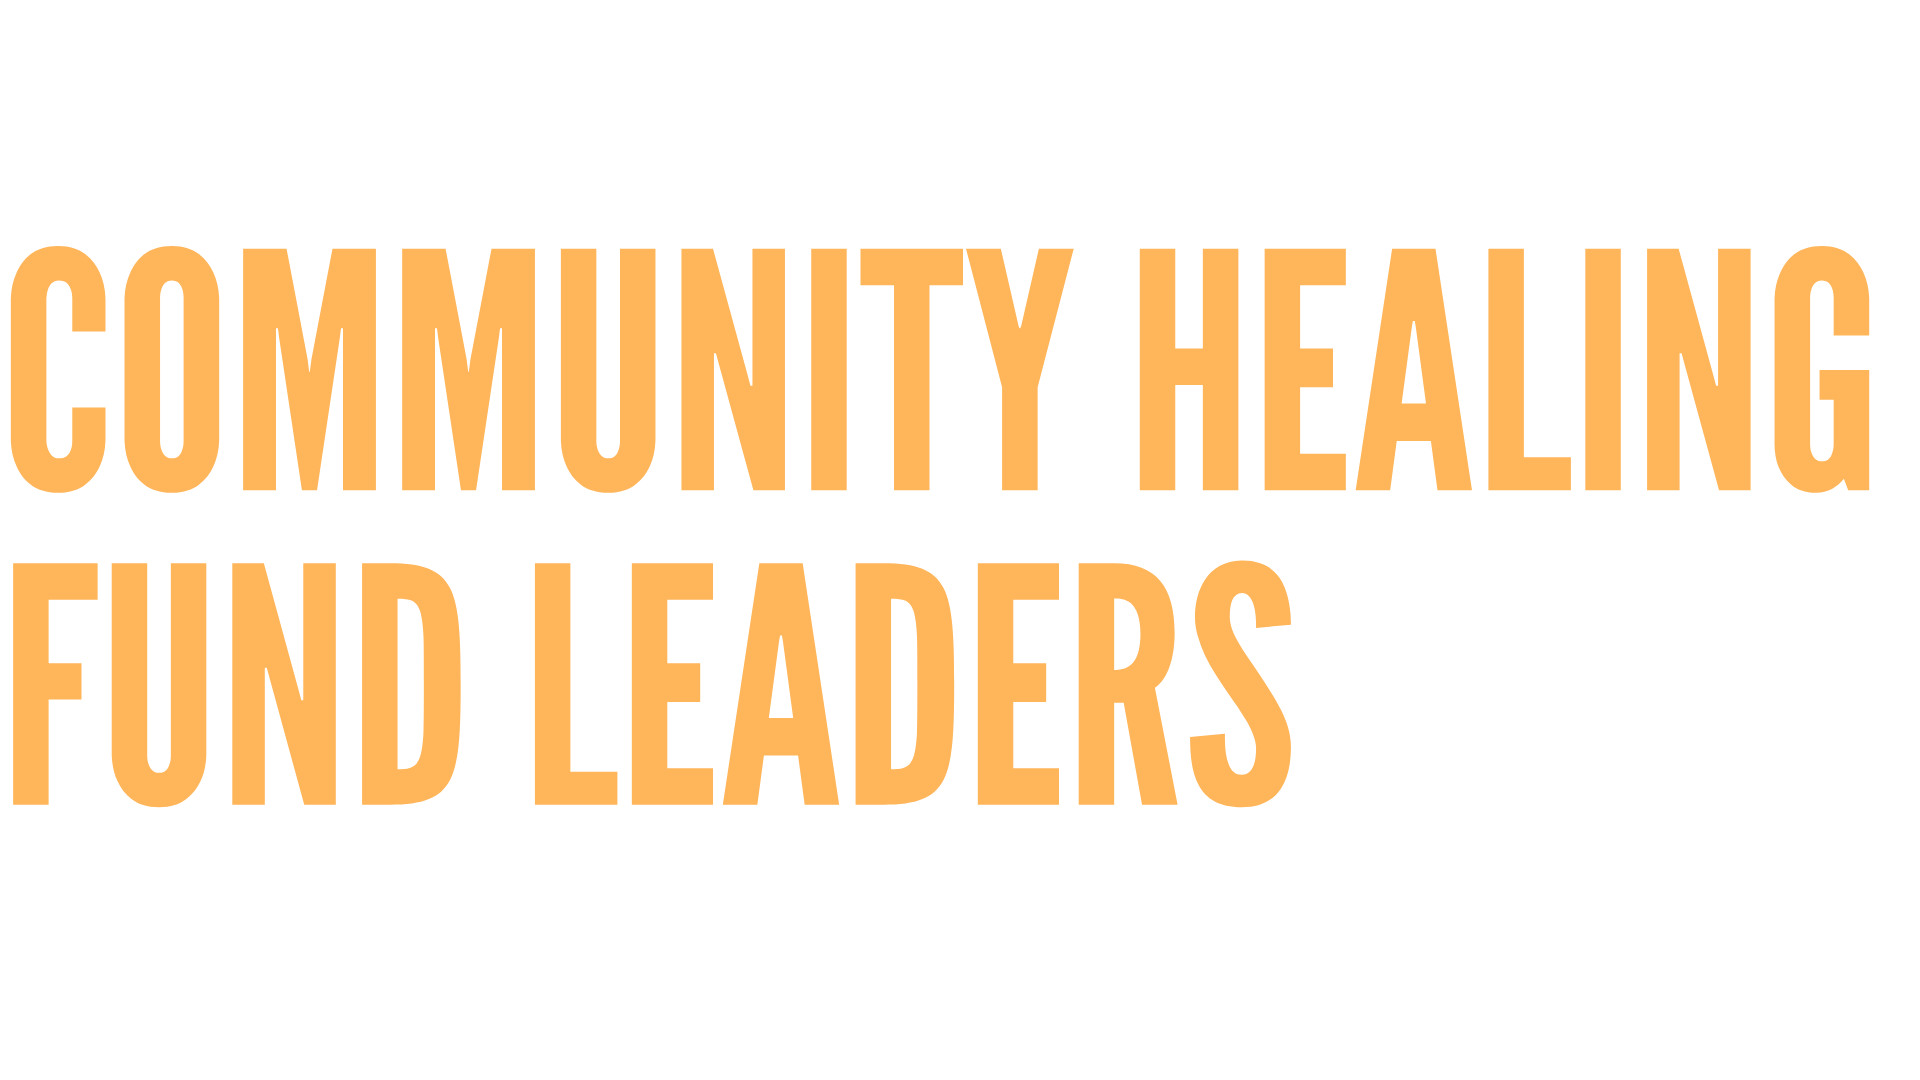 Copy%2020of%2020Community%2020Healing%2020Fund%2020Mailing%2020%20281%2029.png